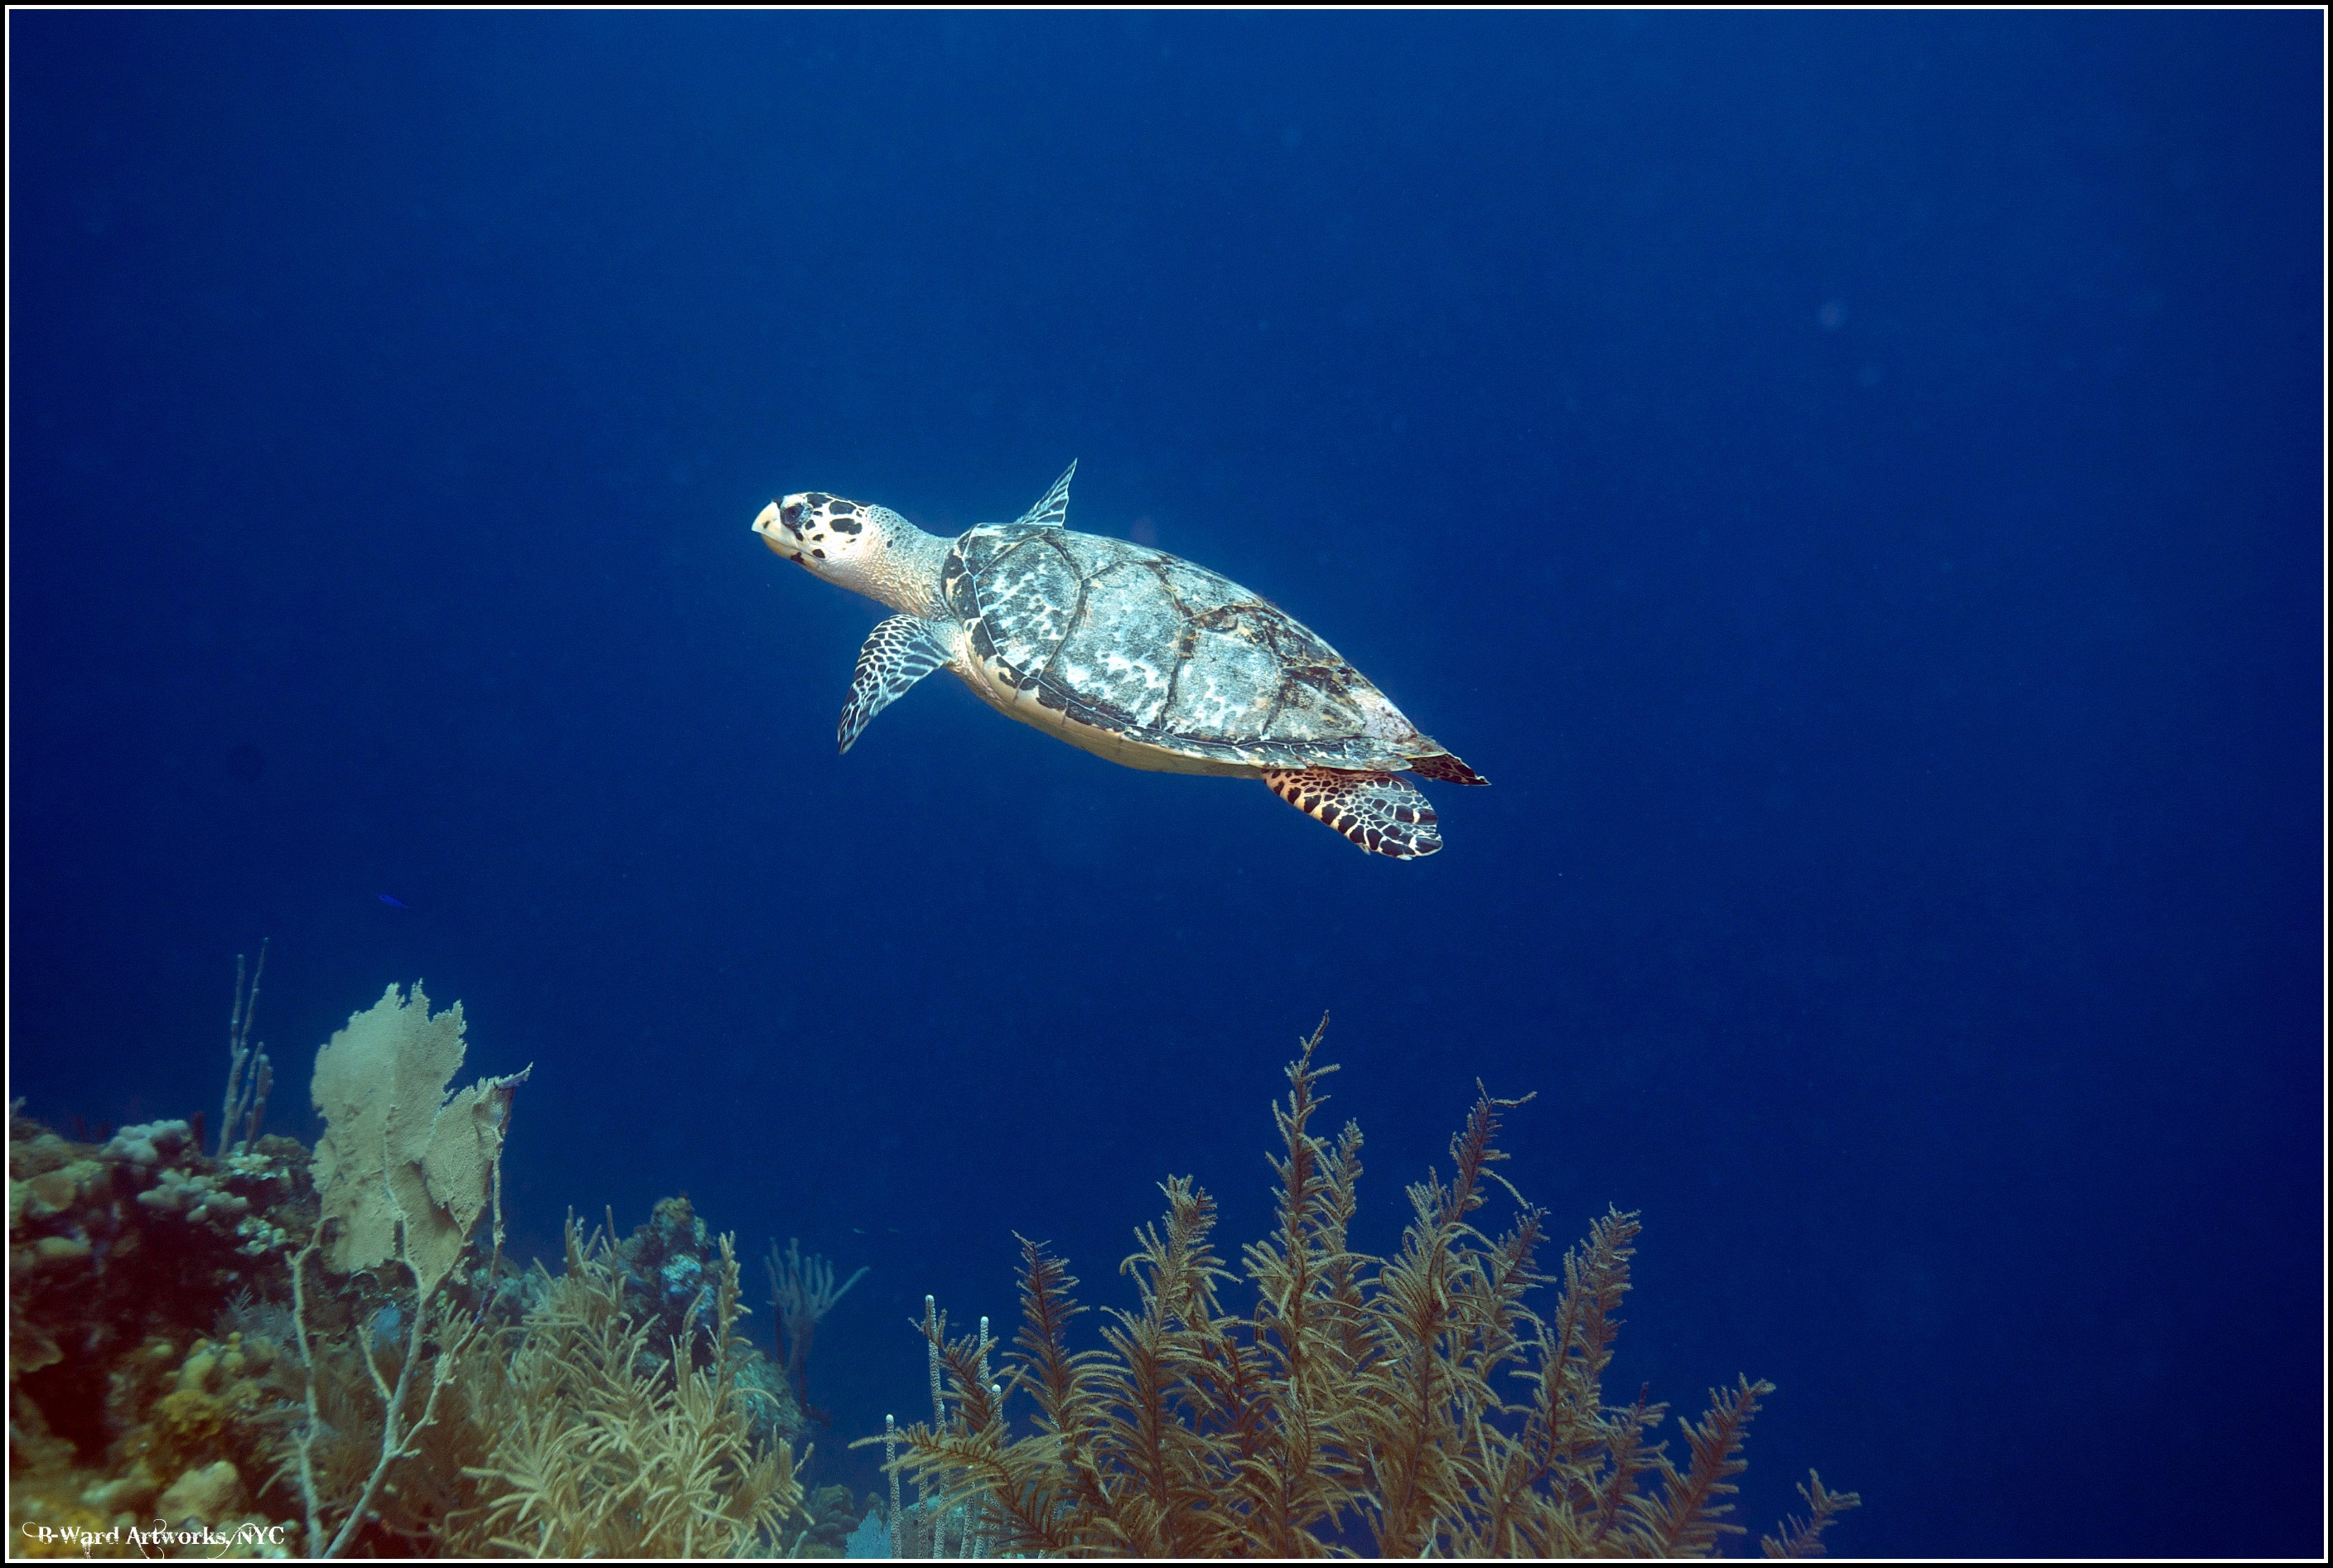 Scuba Hawksbill flyby at reef on Utila, Honduras